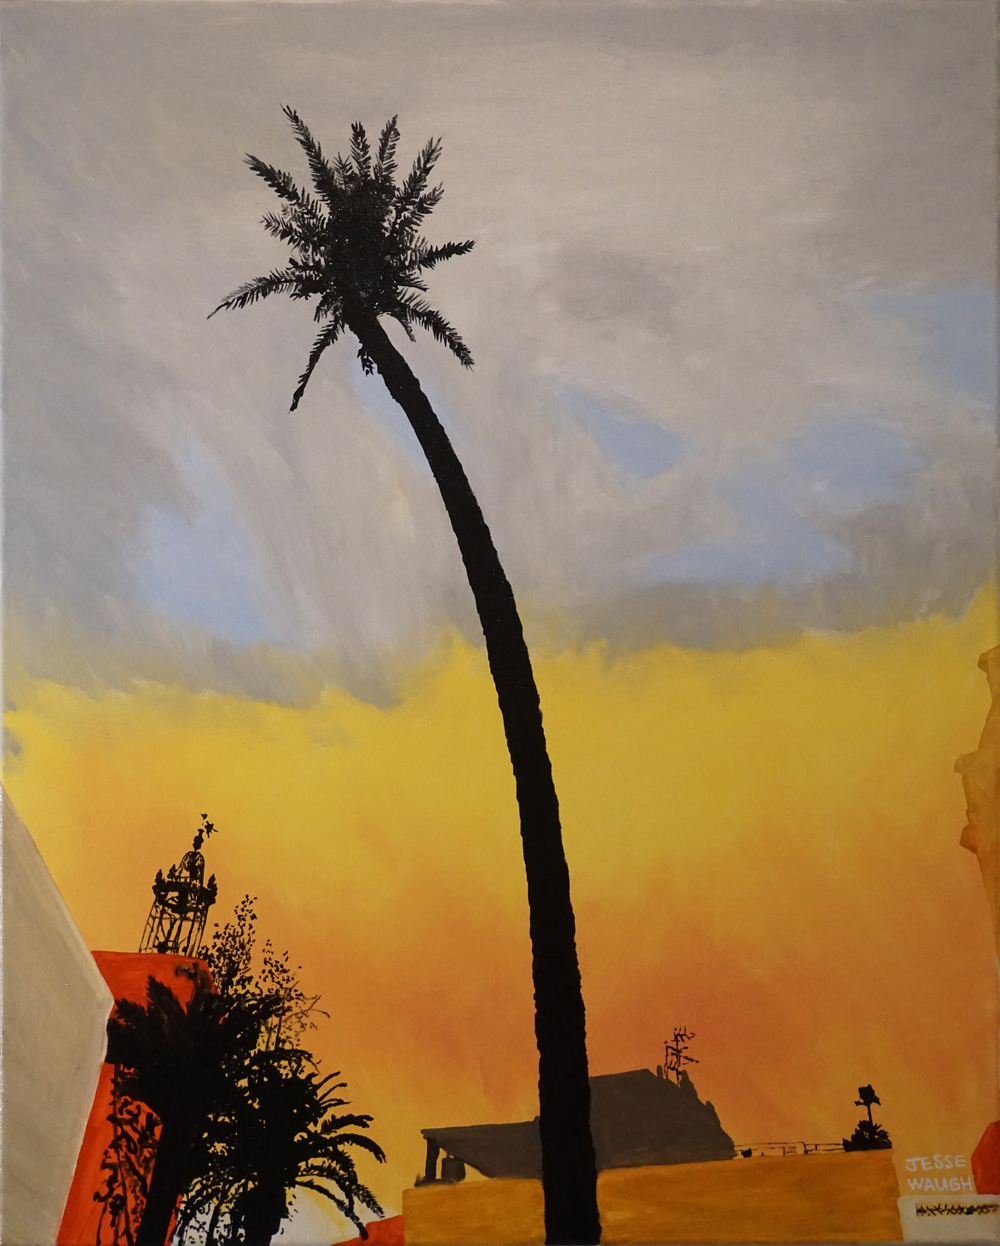 Jesse Waugh   Maricel Palm   2015 Oil on canvas